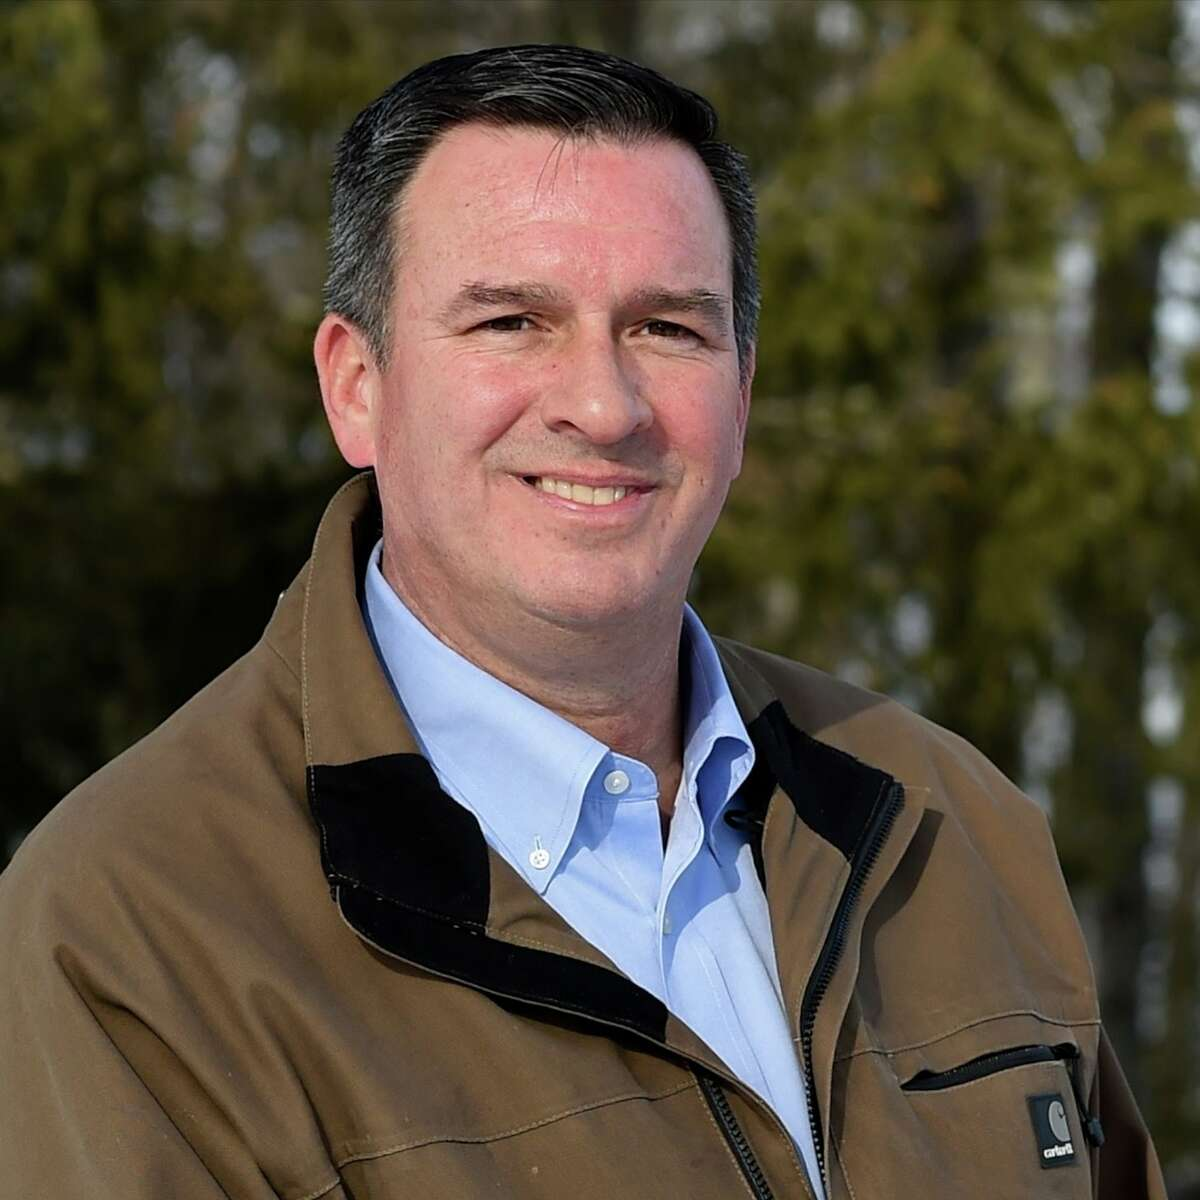 Rich Amedure, a retired state trooper, is the GOP candidate for the 46th state Senate District.